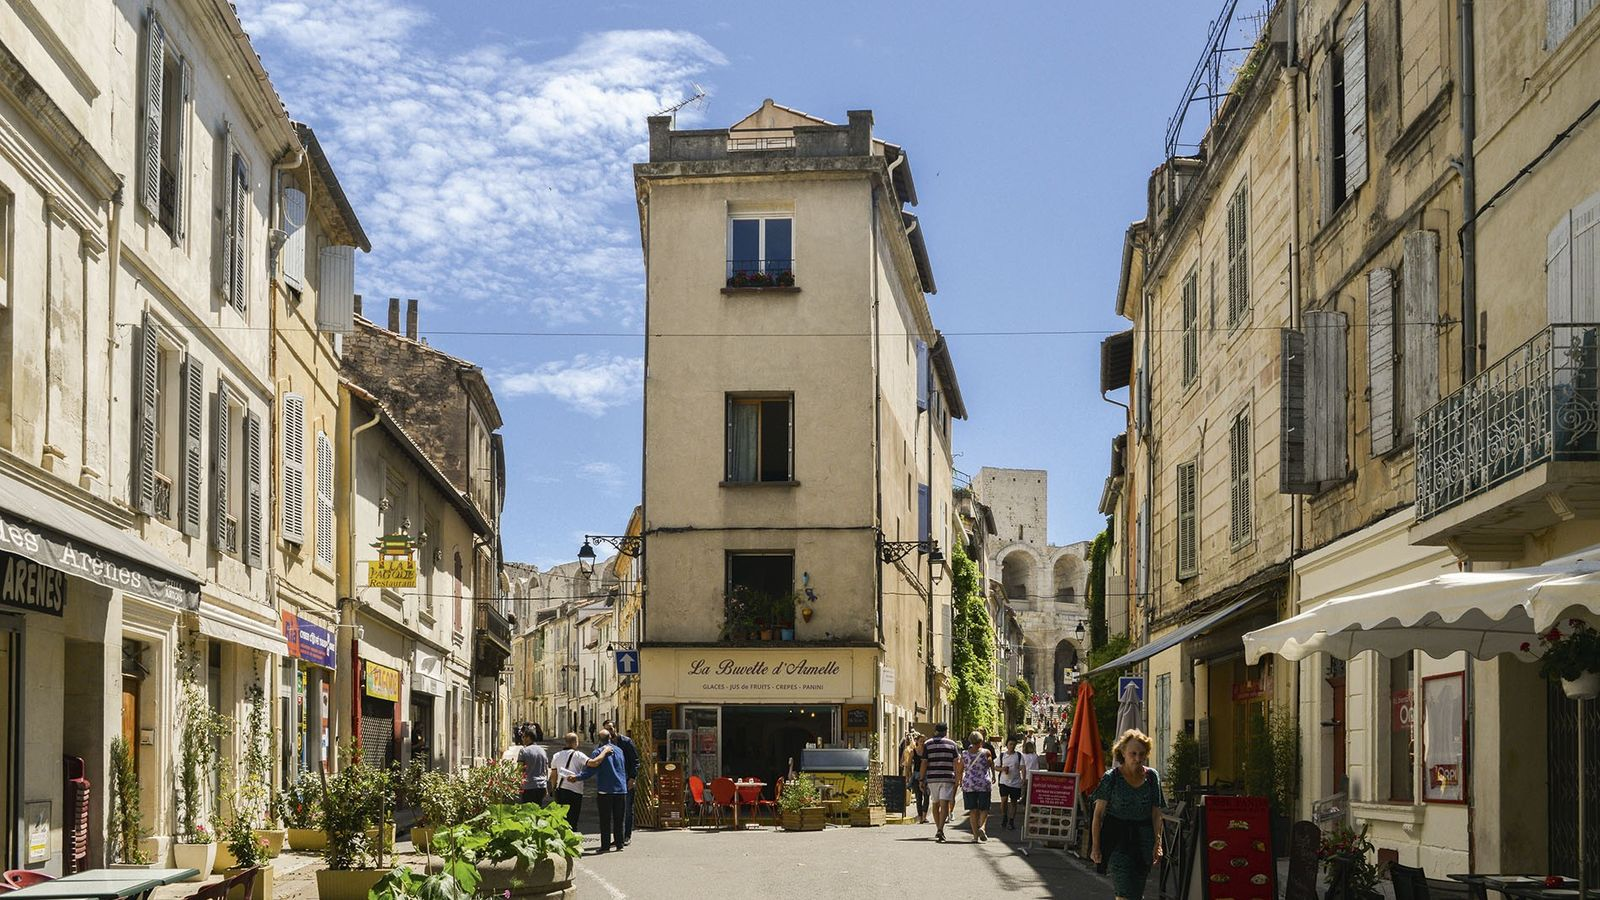 Historic centre of Arles.